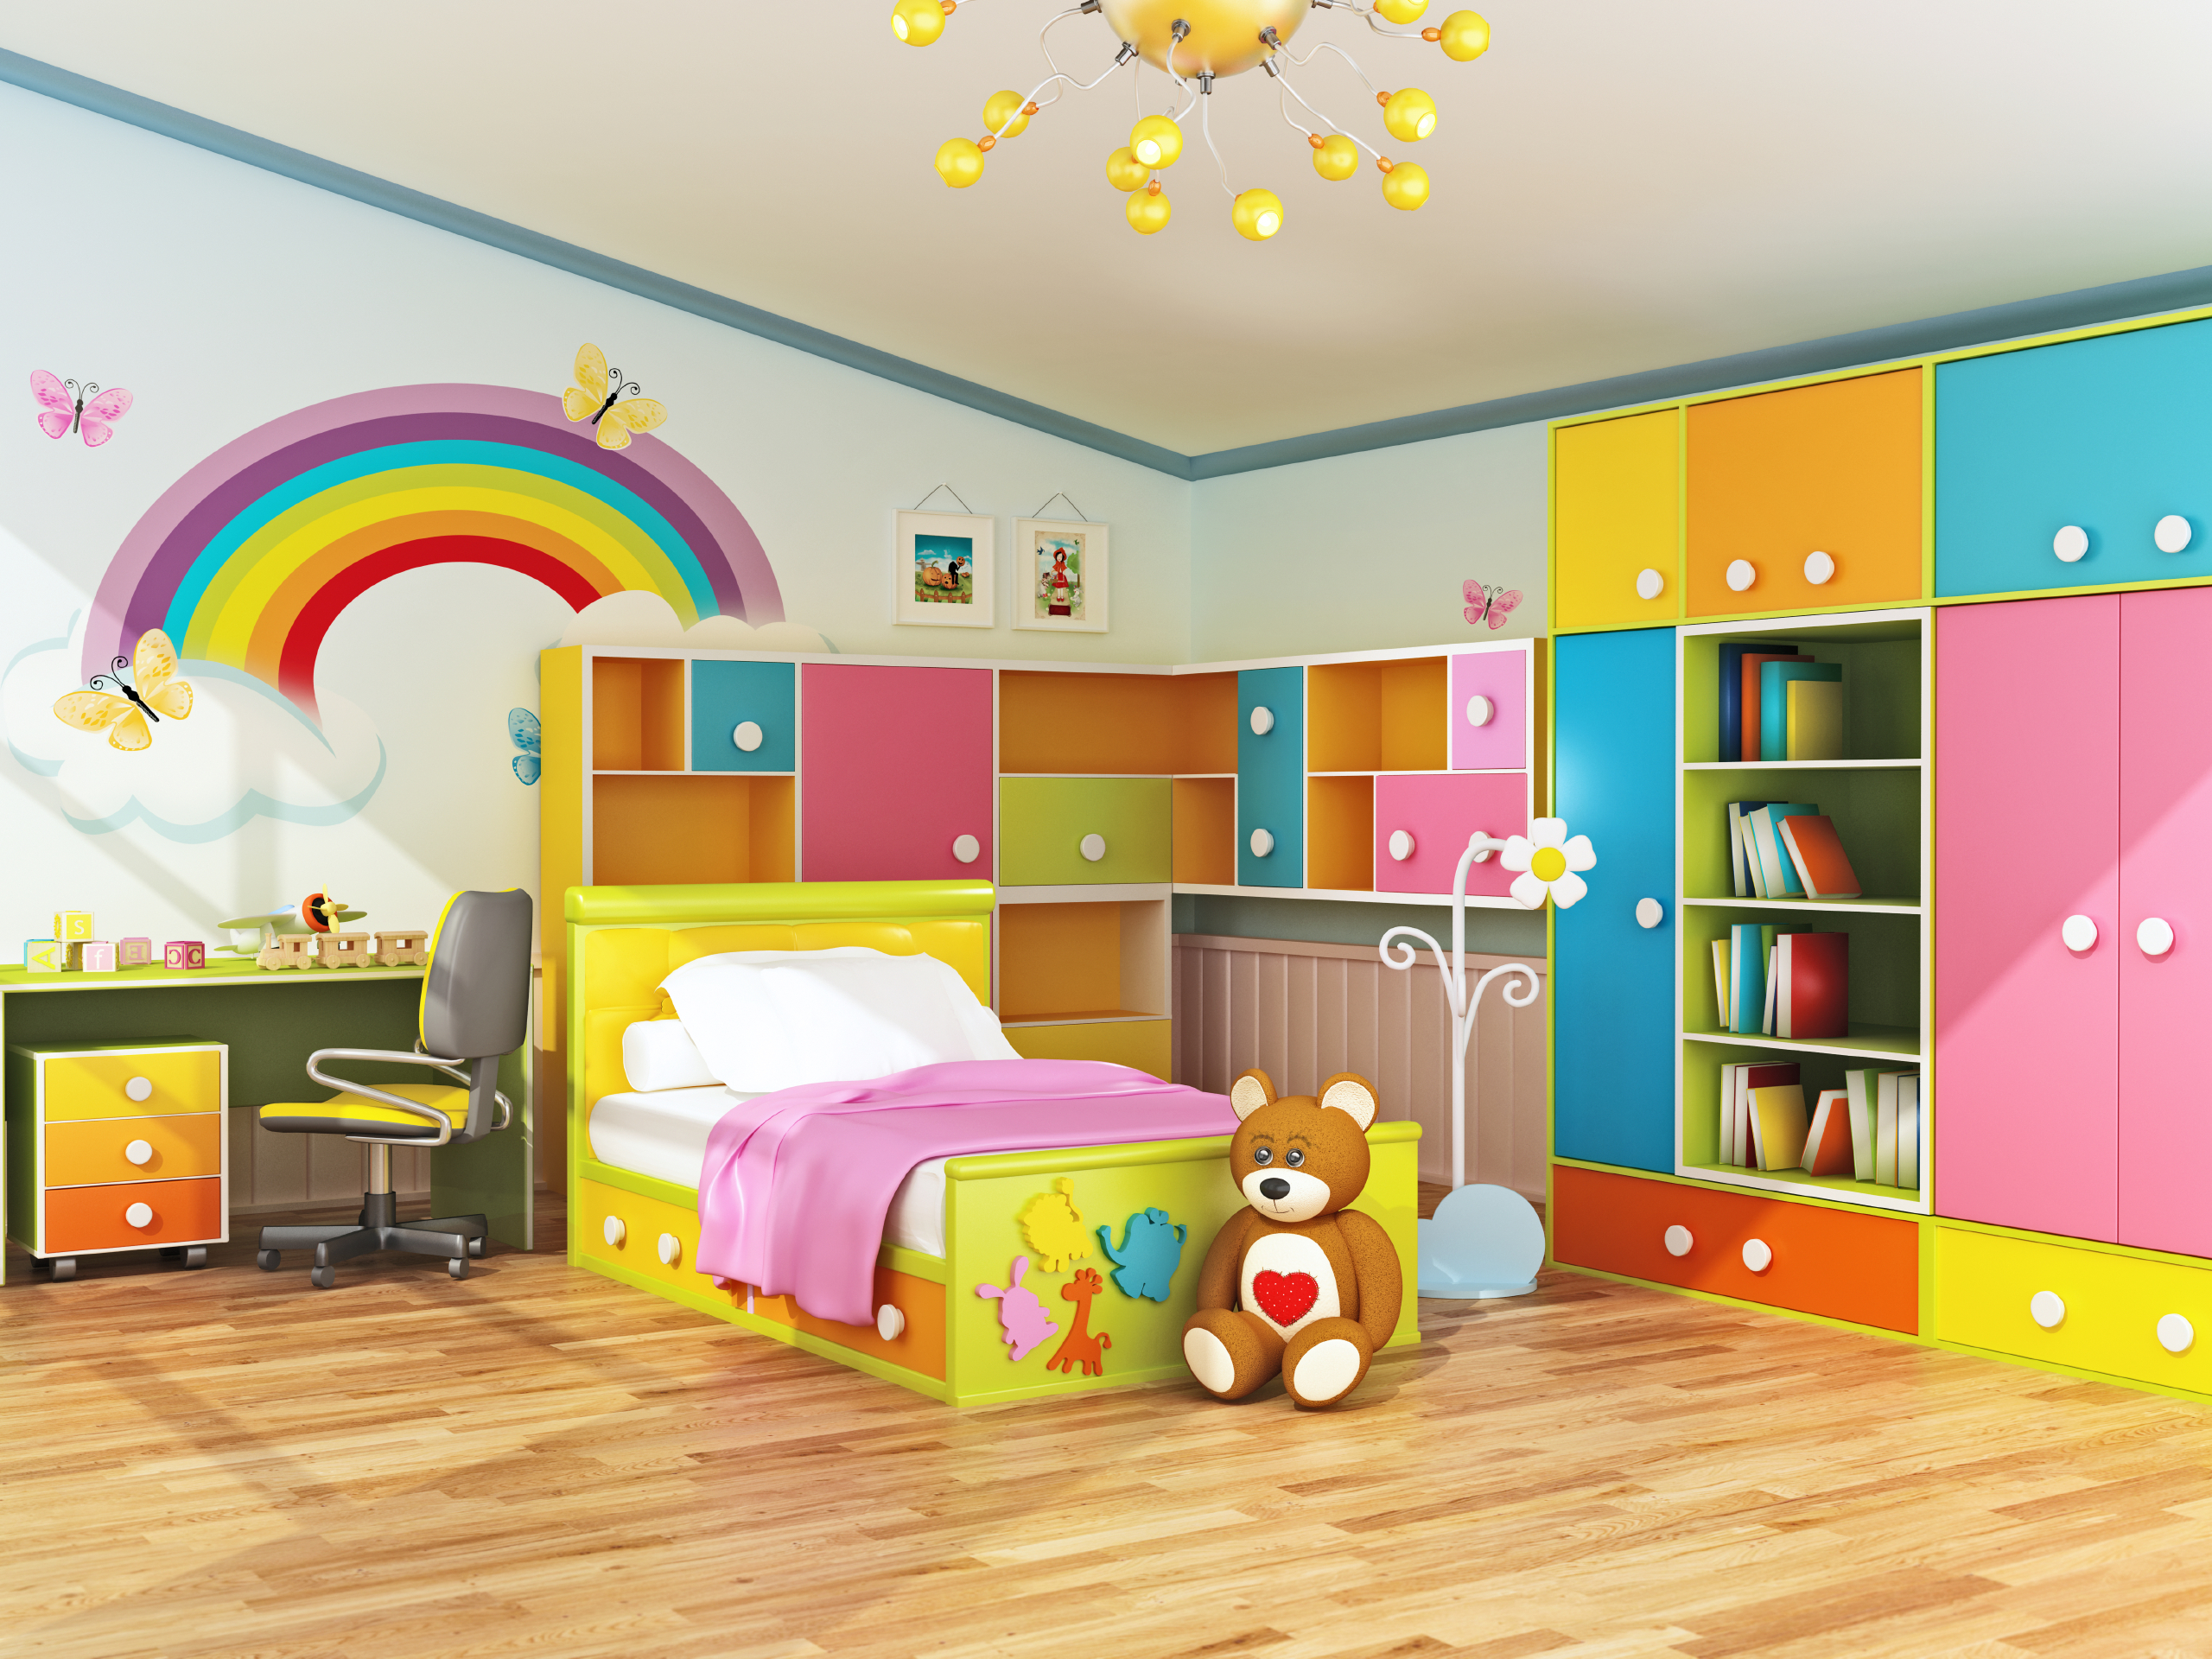 Plan ahead when decorating kids 39 bedrooms rismedia 39 s for Childrens bedroom wall designs